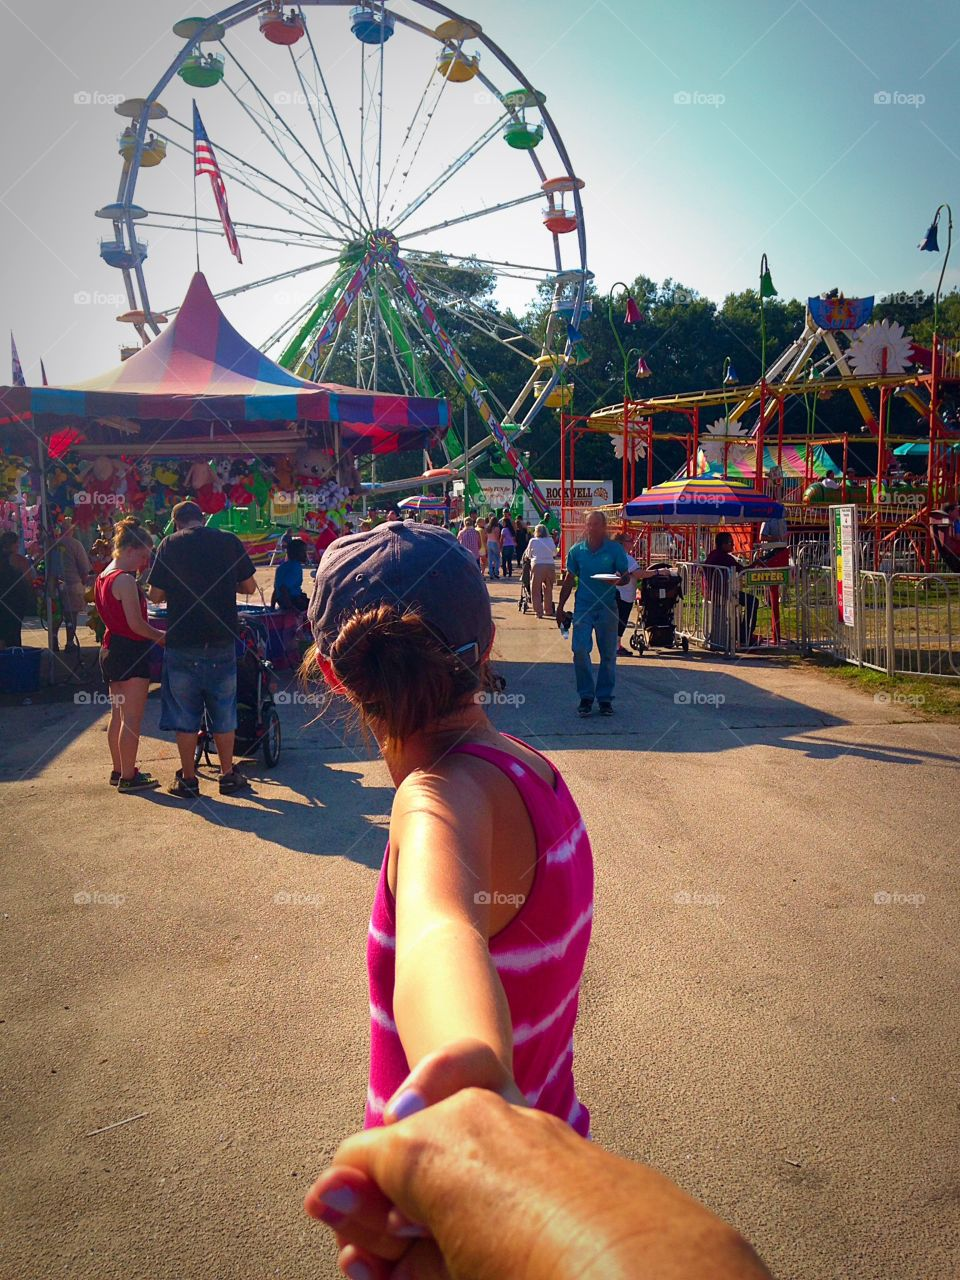 Follow me to the Ferris Wheel. Walking the midway at the county fair - follow me mission